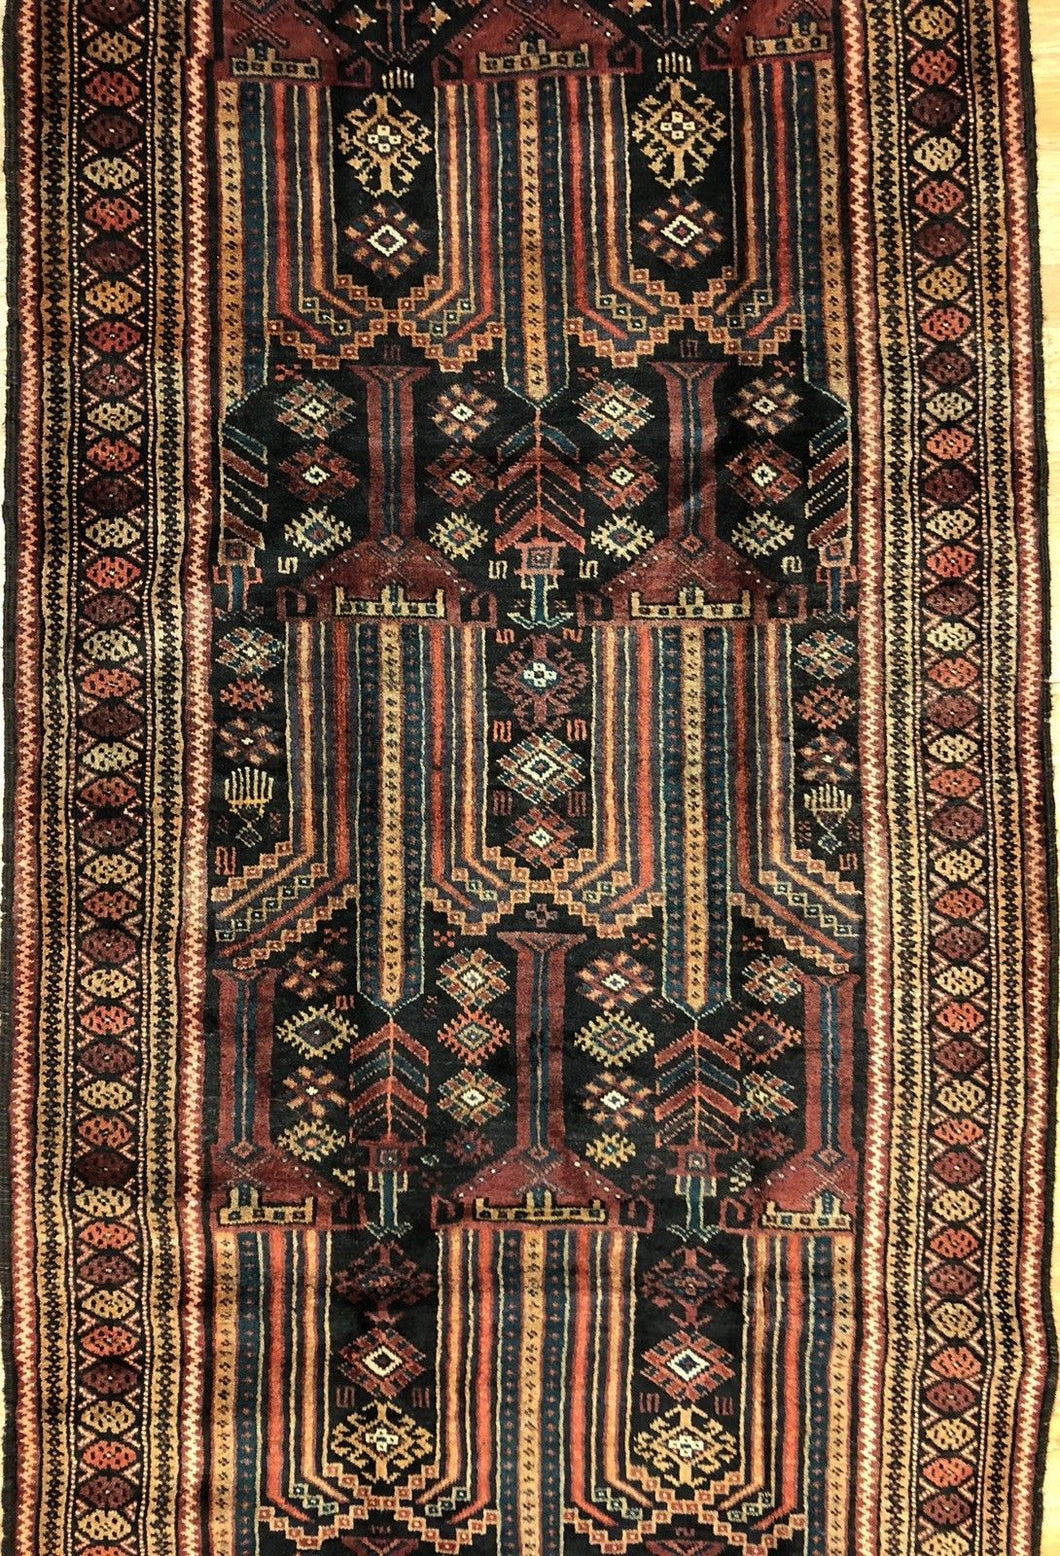 Handsome Hamadan - 1940s Antique Persian Rug - Tribal Runner - 3'8